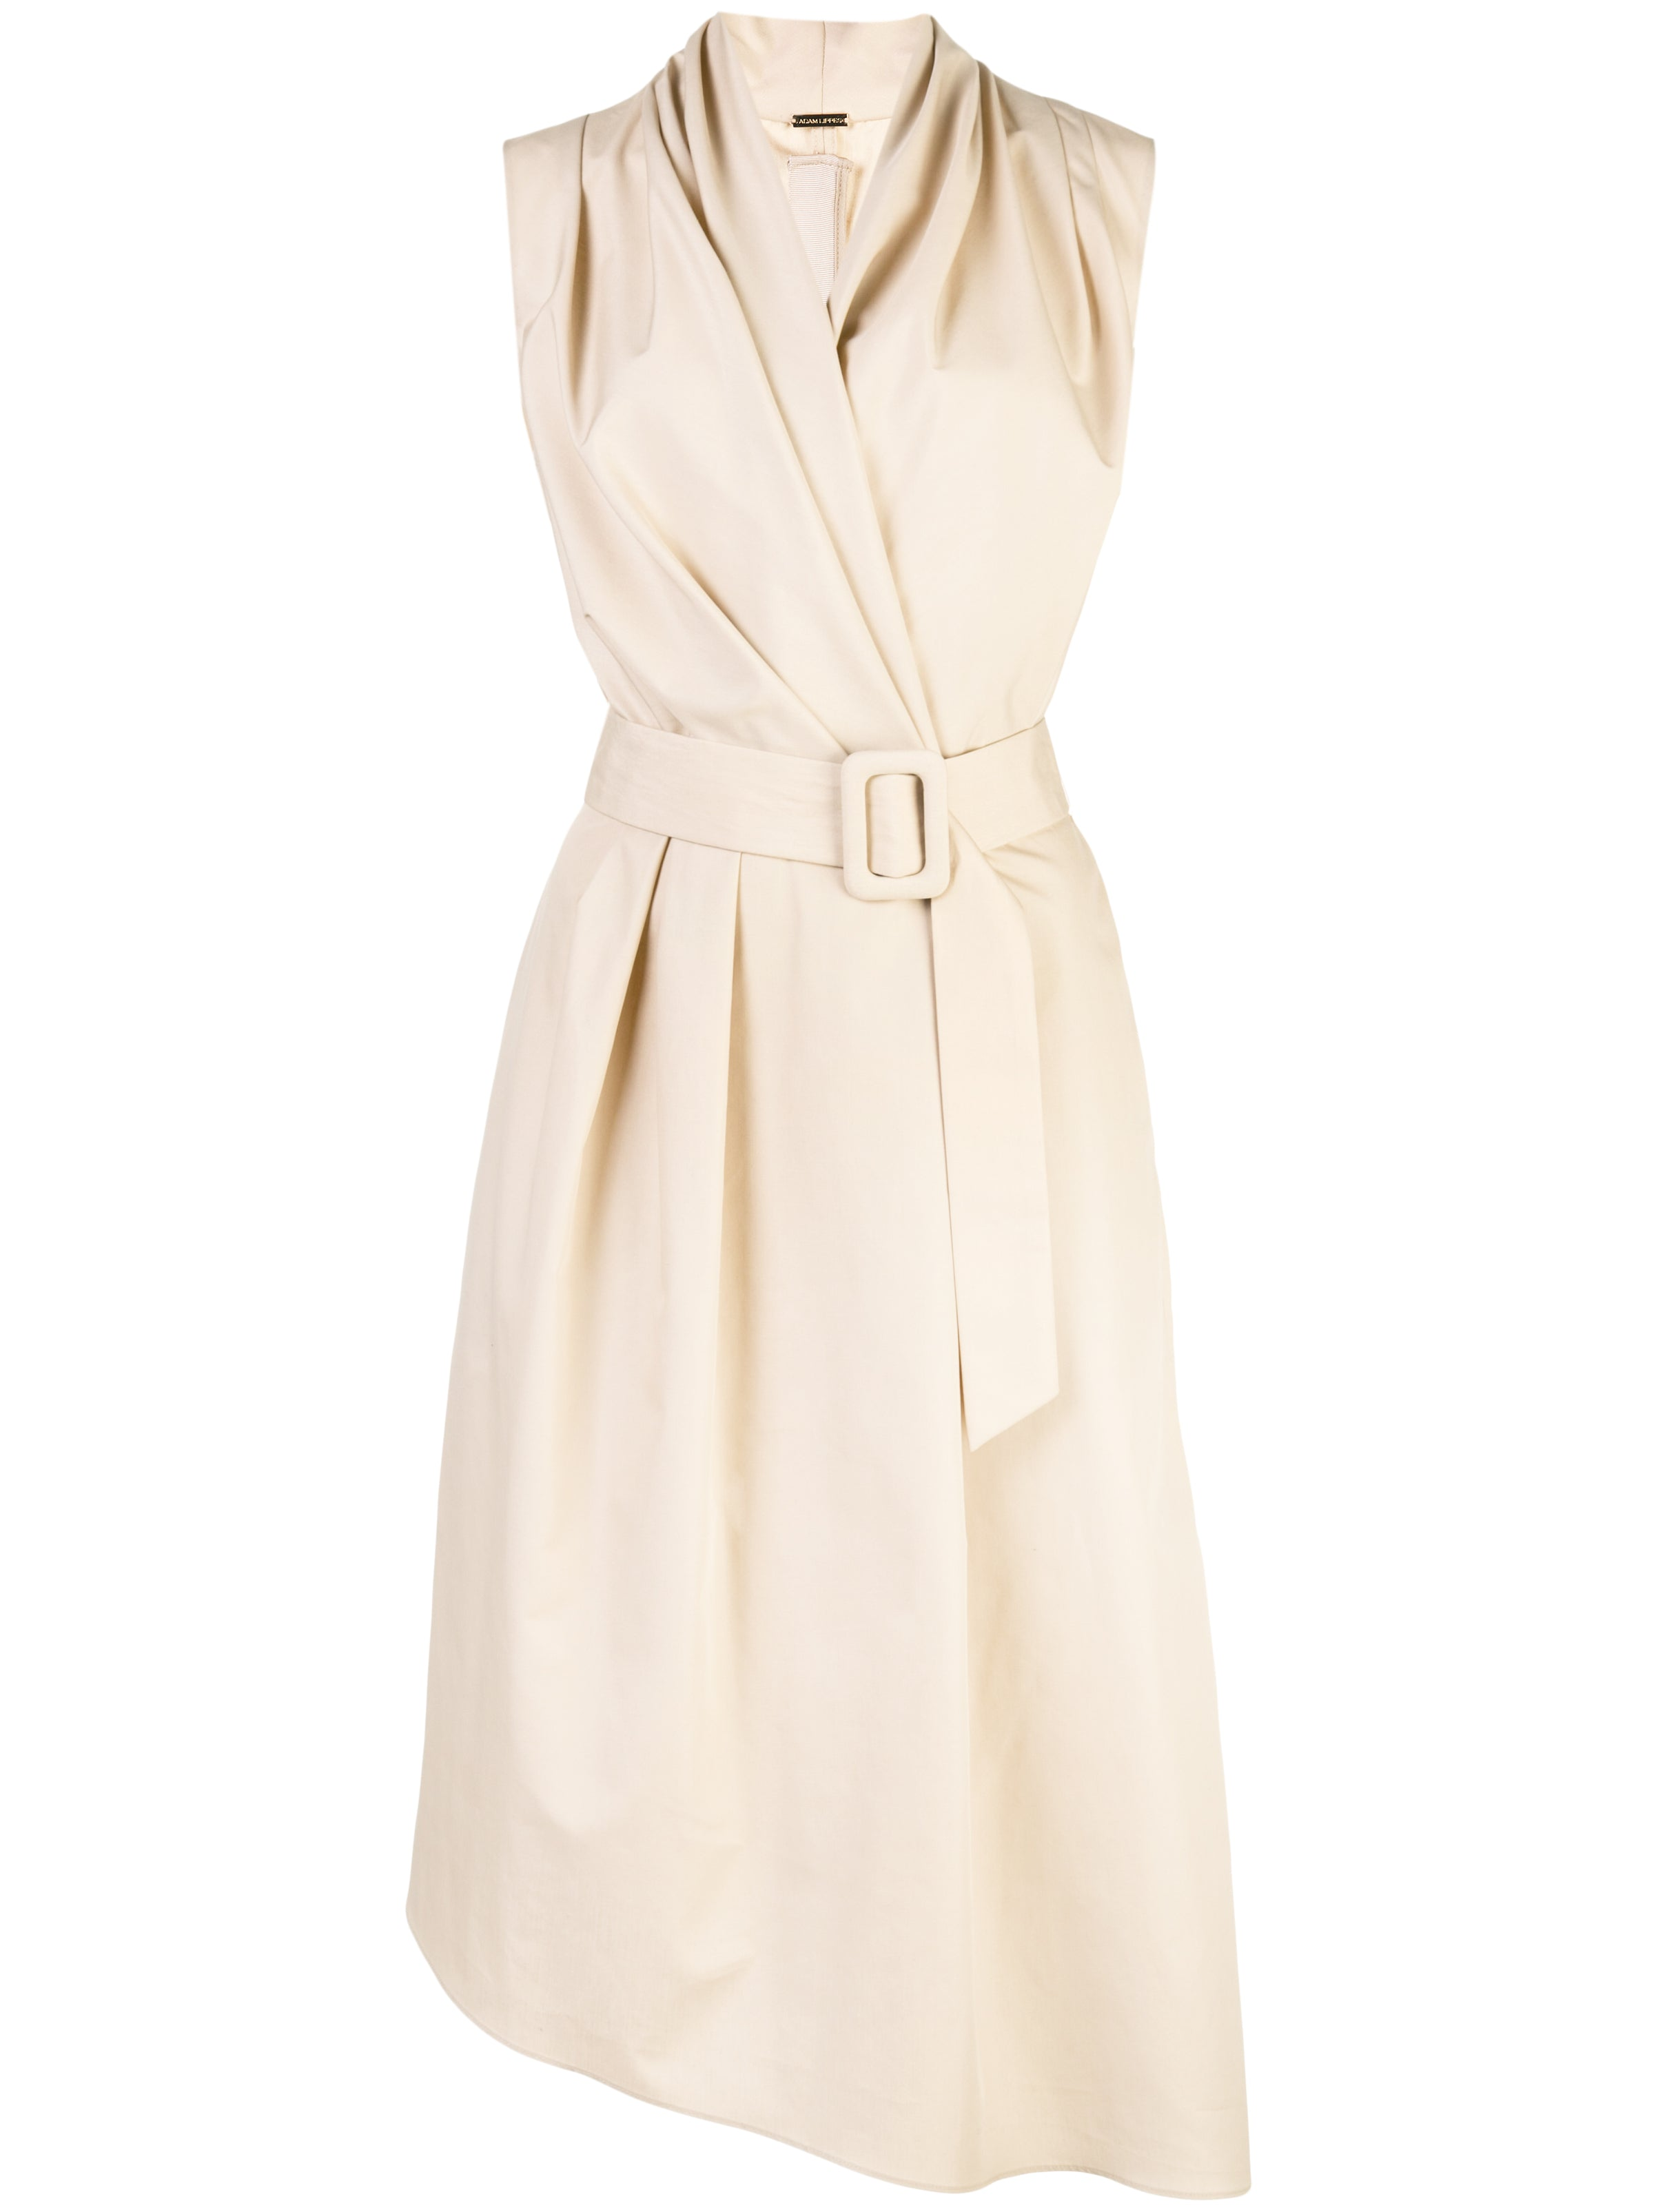 COTTON POPLIN V-NECK DRESS WITH BELT